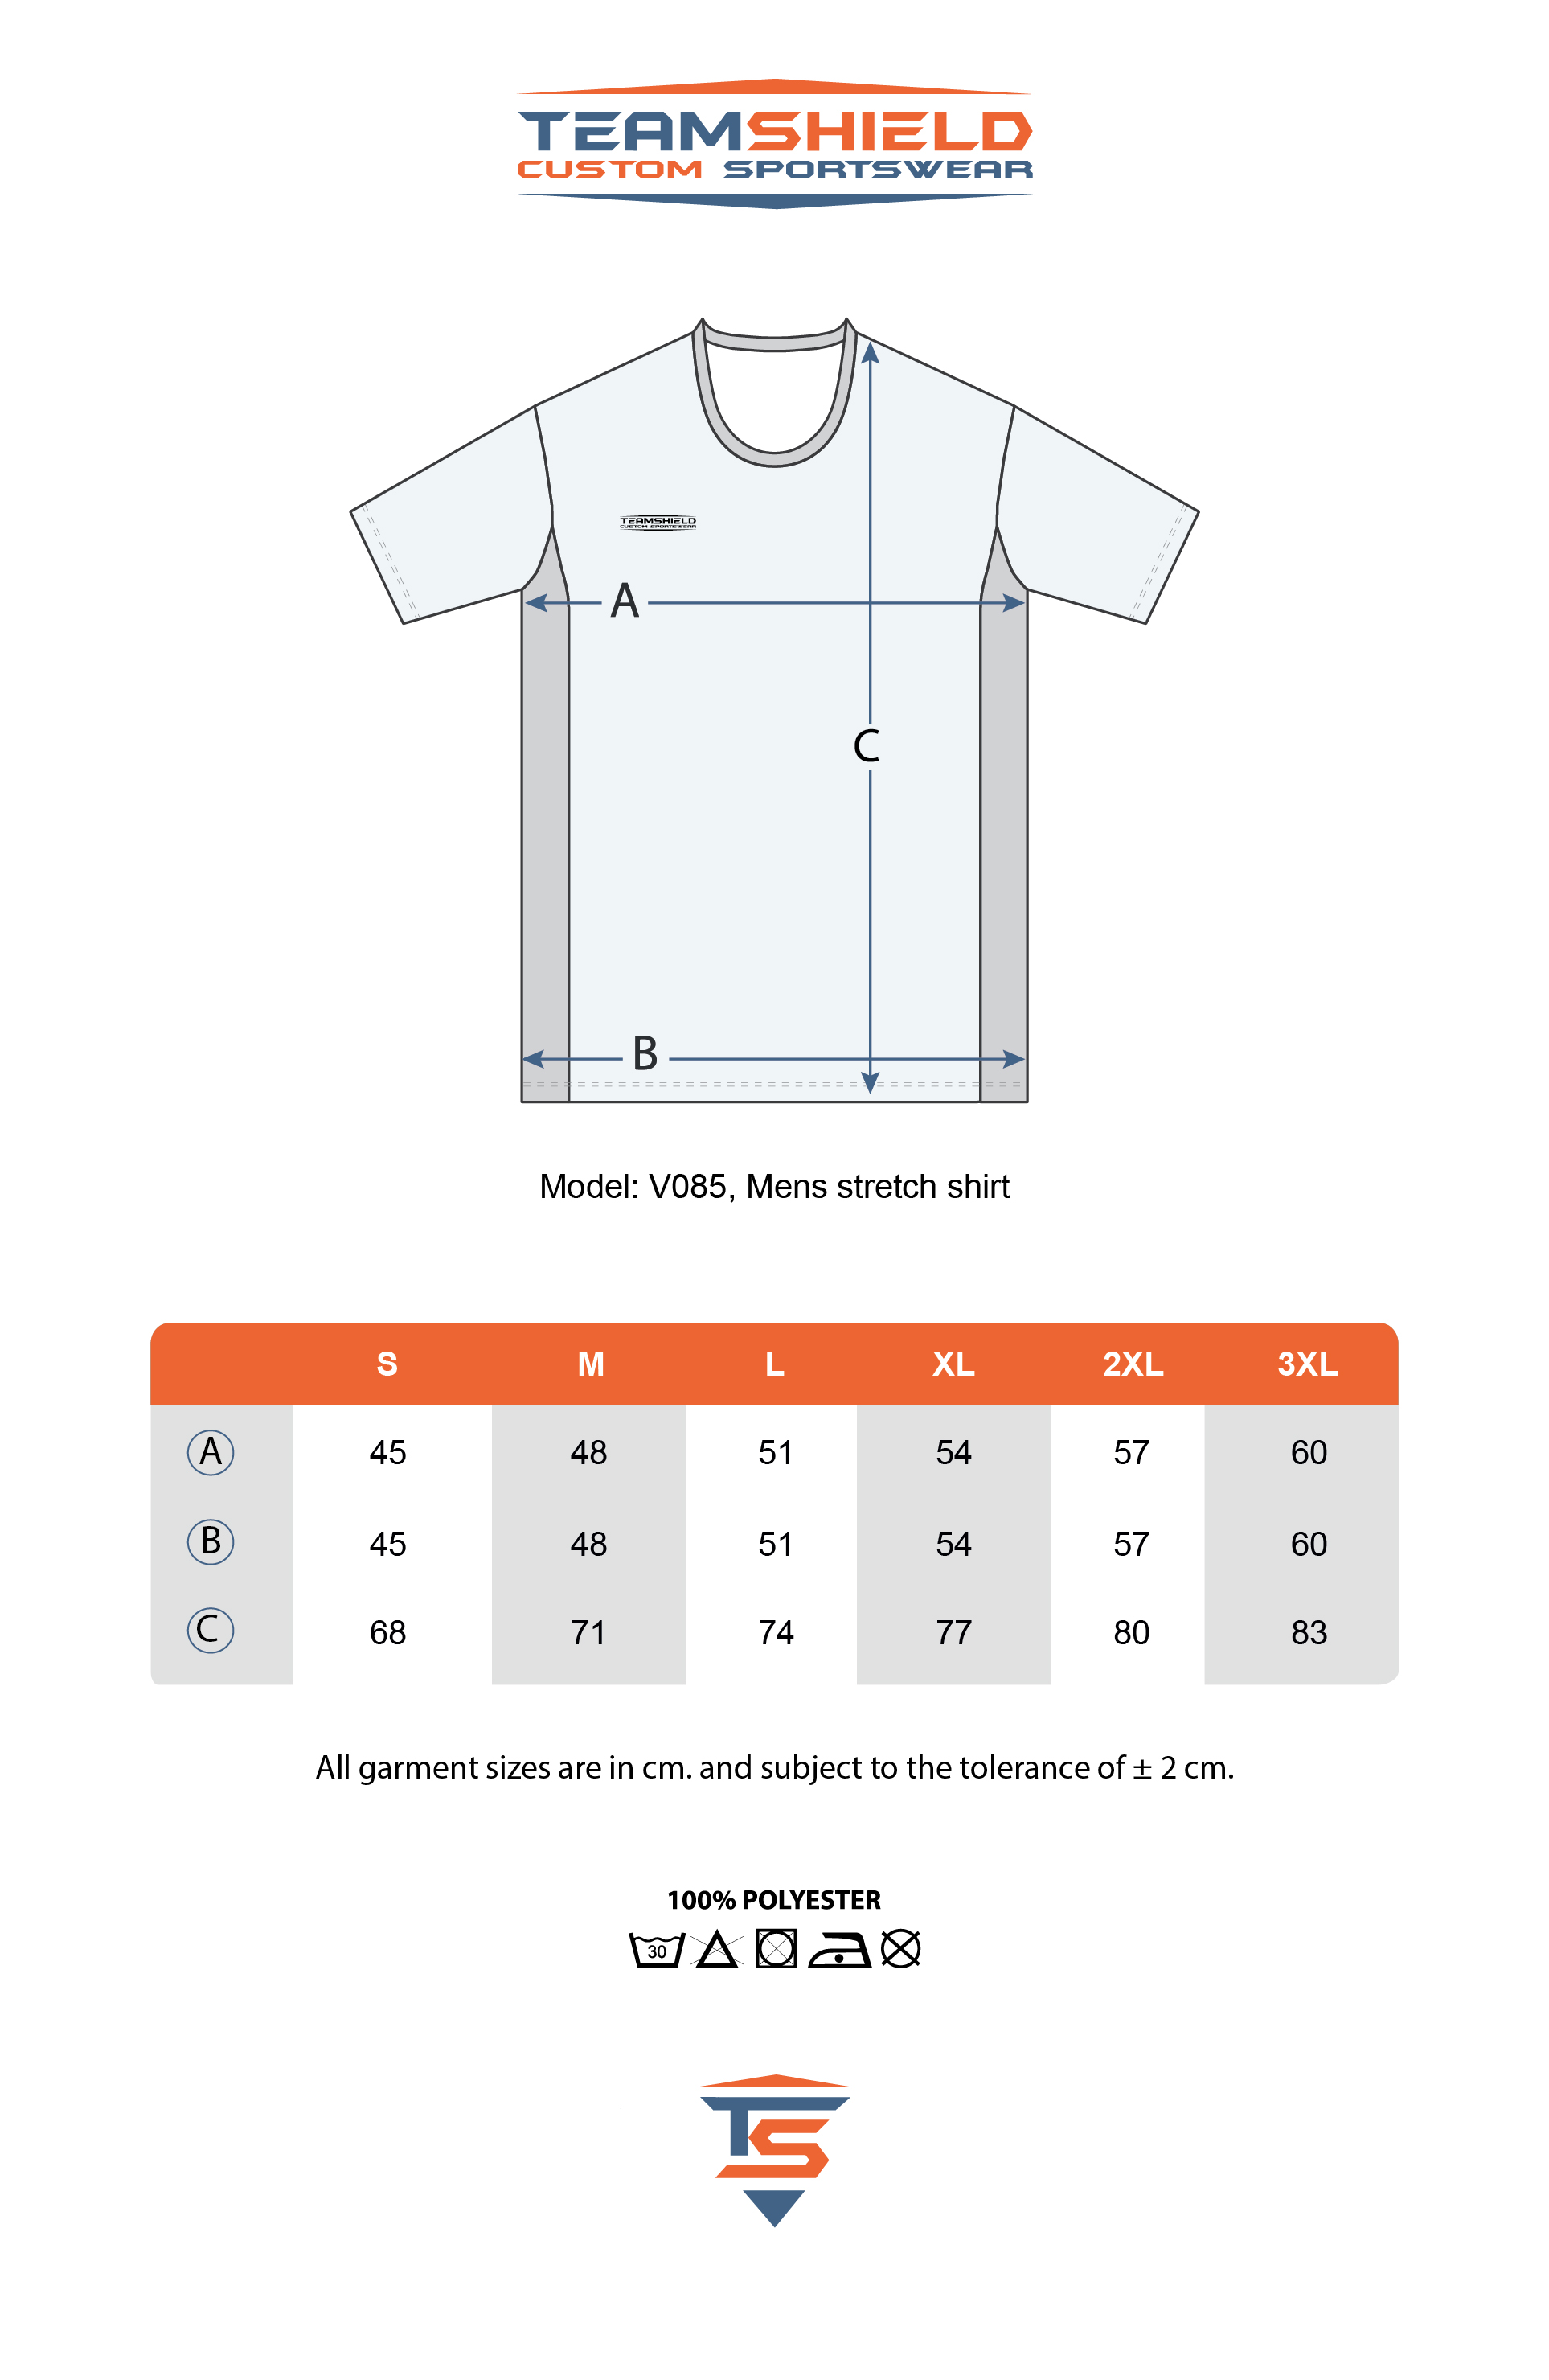 Teamshield-Custom-Teamwear-Sizechart-V085-Sublimation-Shirt-Body-Fit